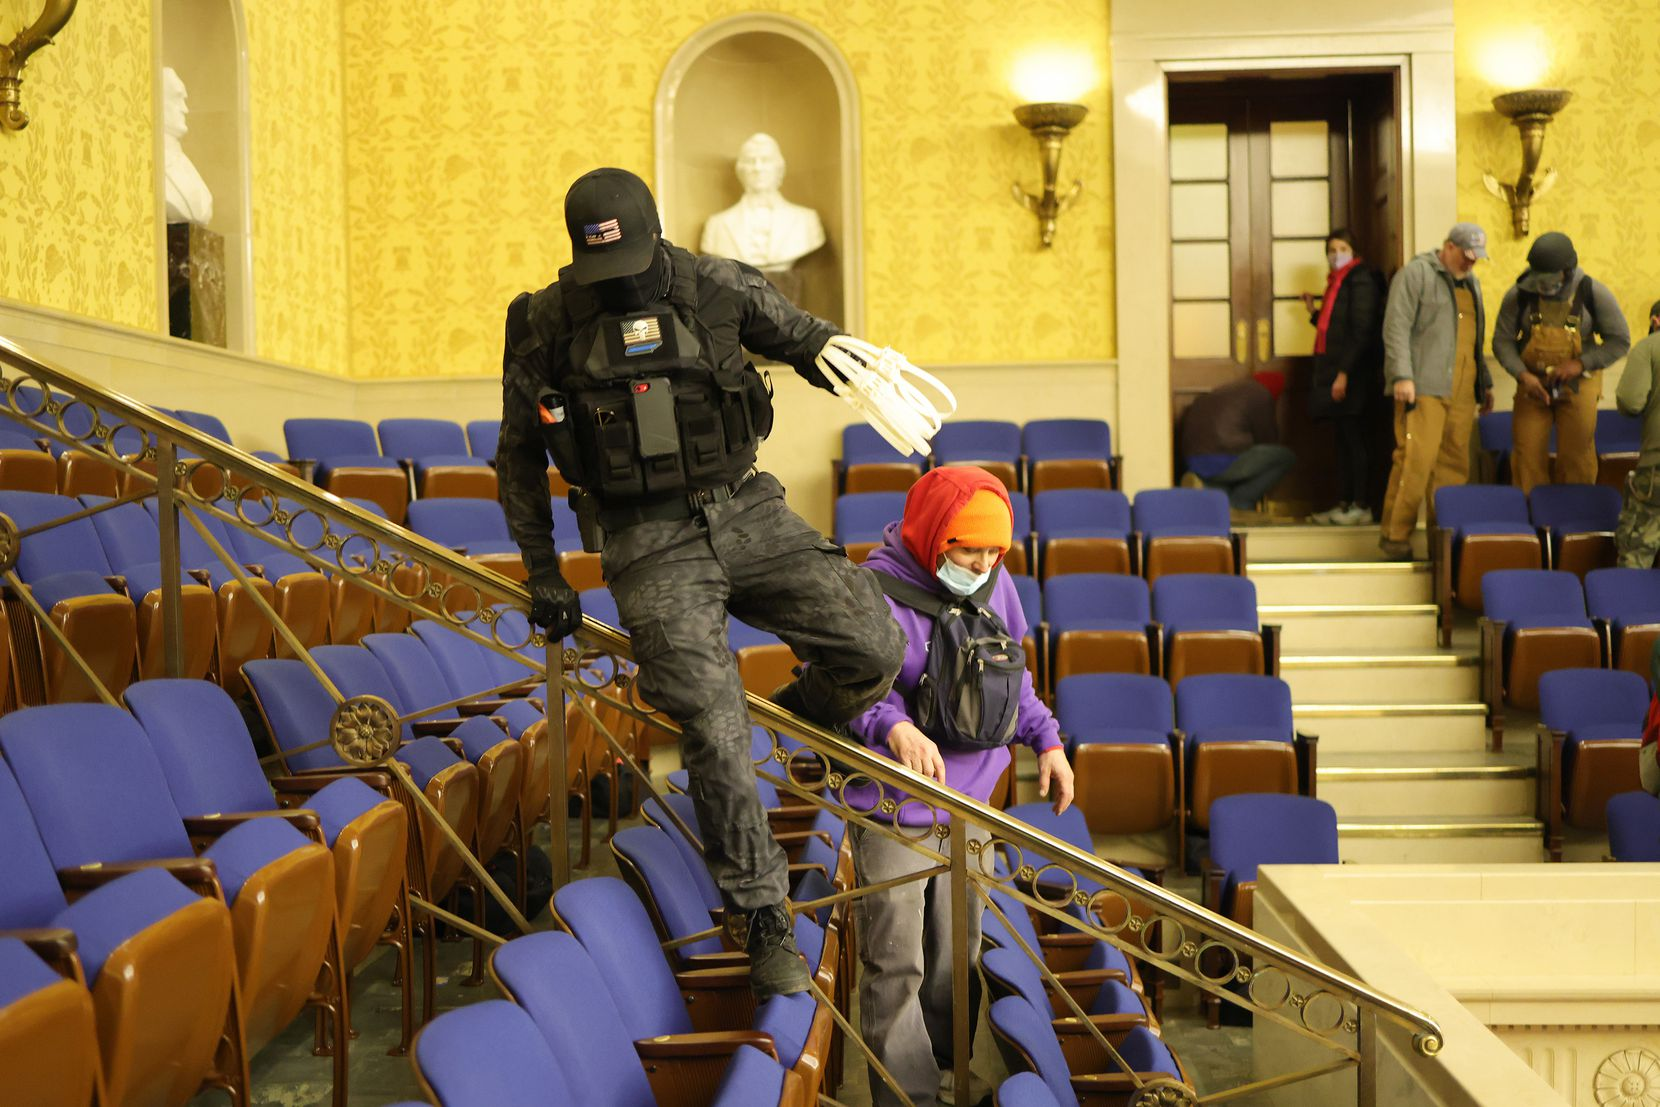 A rioter who entered the U.S. Senate chambers on Jan. 6, 2021, wore the Punisher logo.